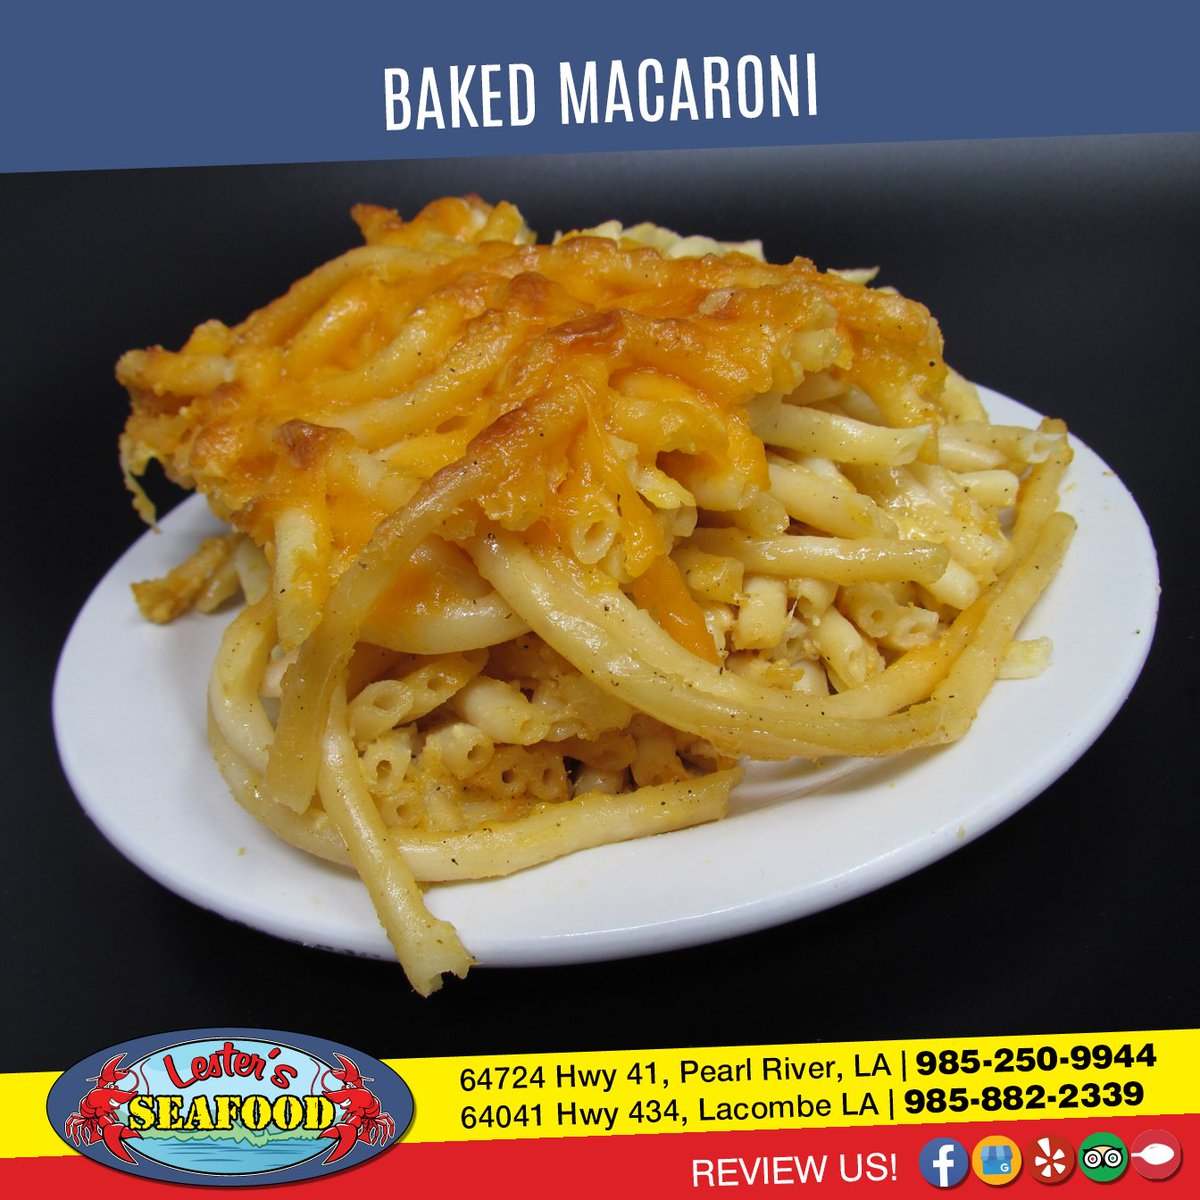 BAKED MAC - A huge helping of our signature Baked Mac. 3.99  #LestersSeafood #Chicken #FoodPic #NomNompic.twitter.com/KStBZFEMPw